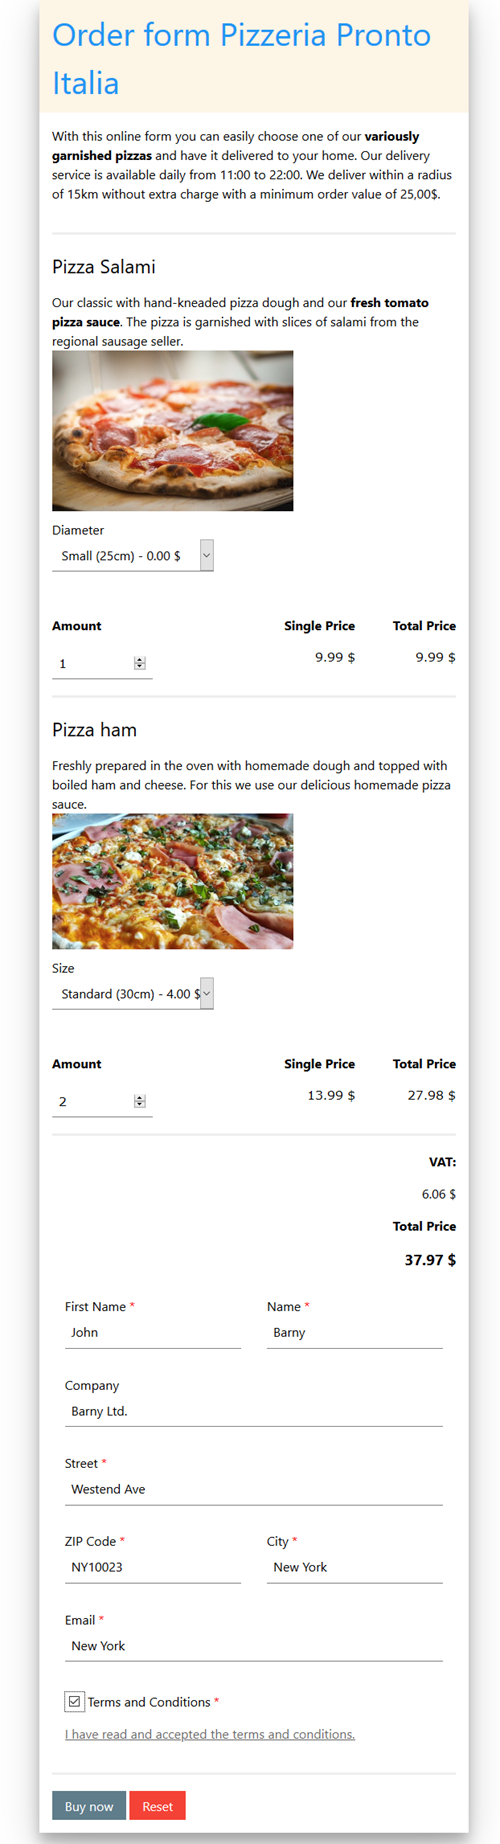 Online order form delivery service pizzeria